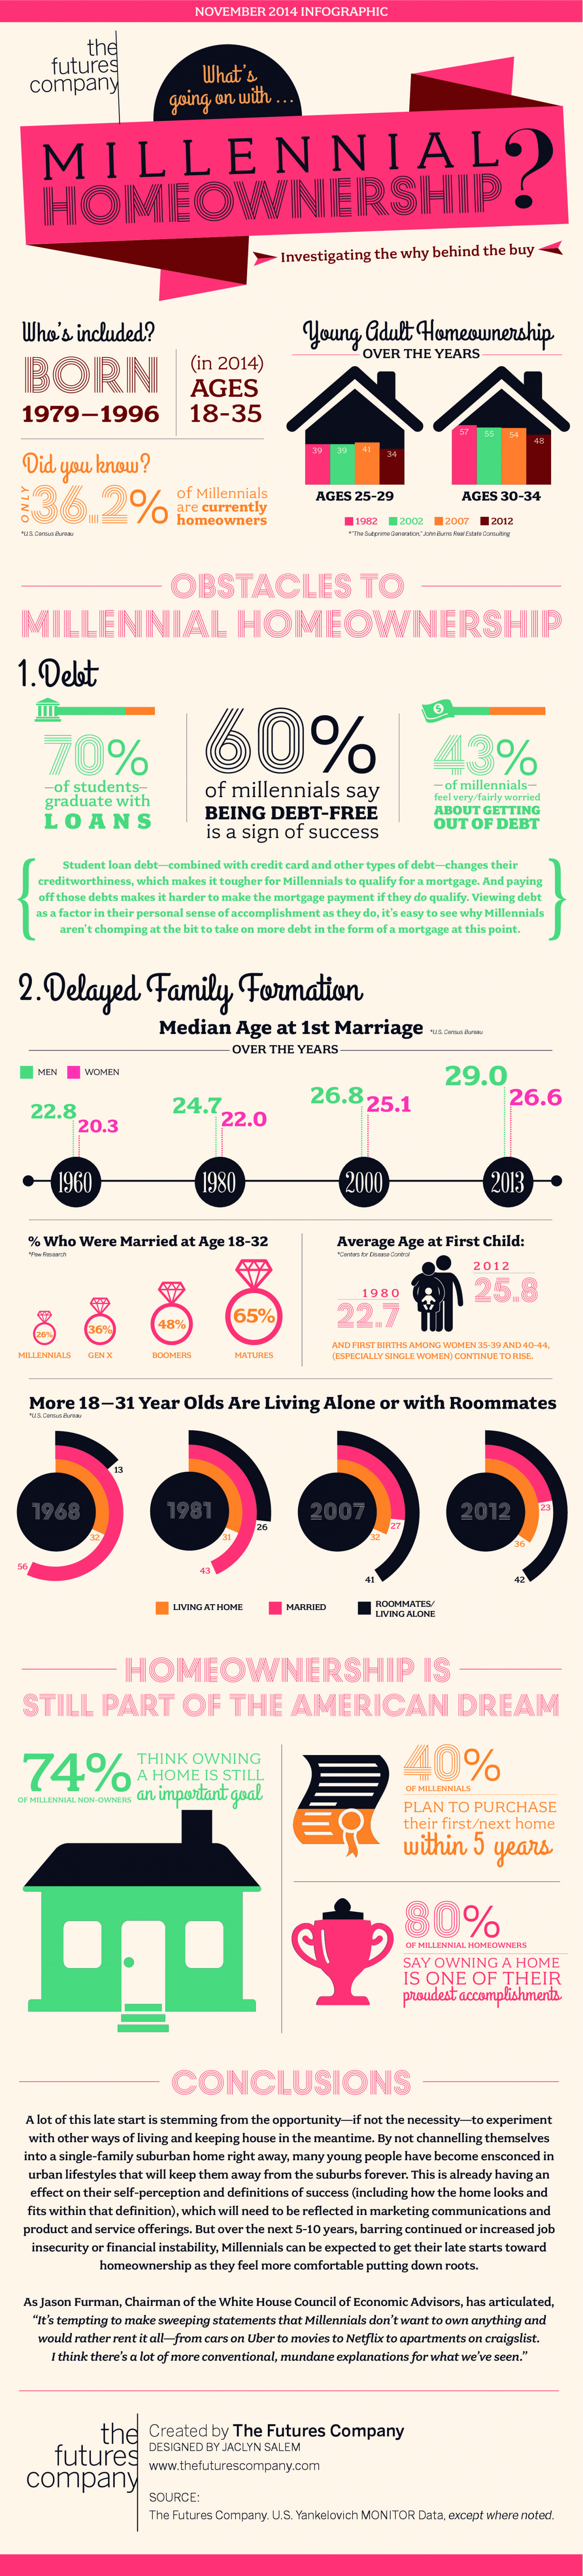 What's Going on with Millennial Homeownership? Infographic